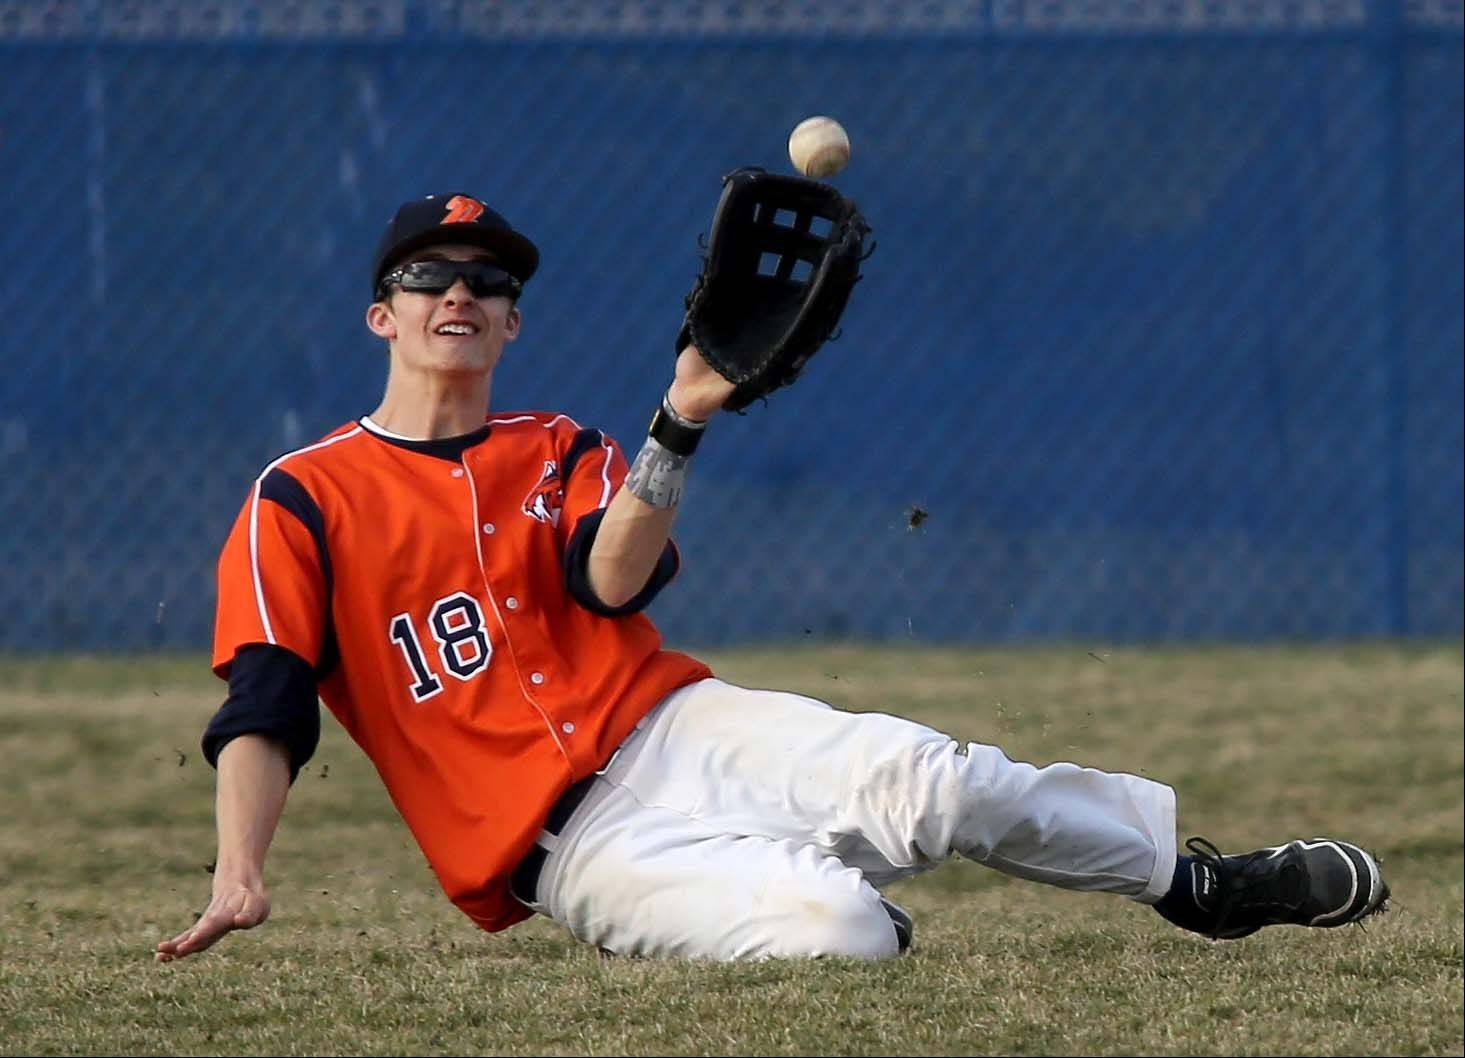 Naperville North's Alex Garon makes a sliding catch in the outfield during Monday's baseball game against Wheaton North in Naperville.